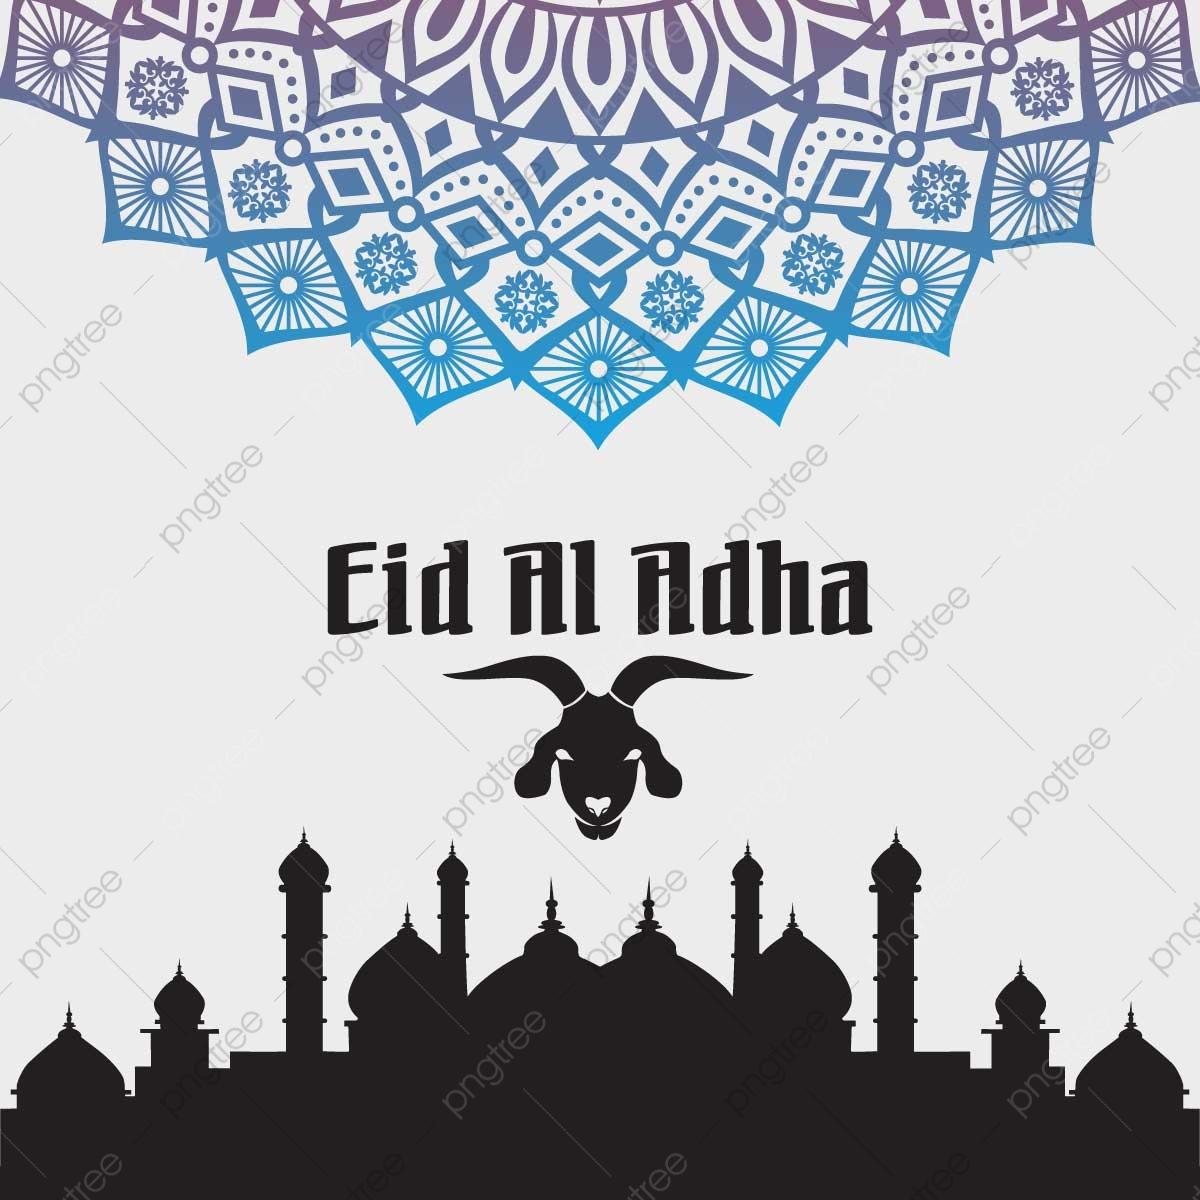 eid al adha vector design card background celebration png and vector with transparent background for free download https pngtree com freepng eid al adha vector design 5348387 html